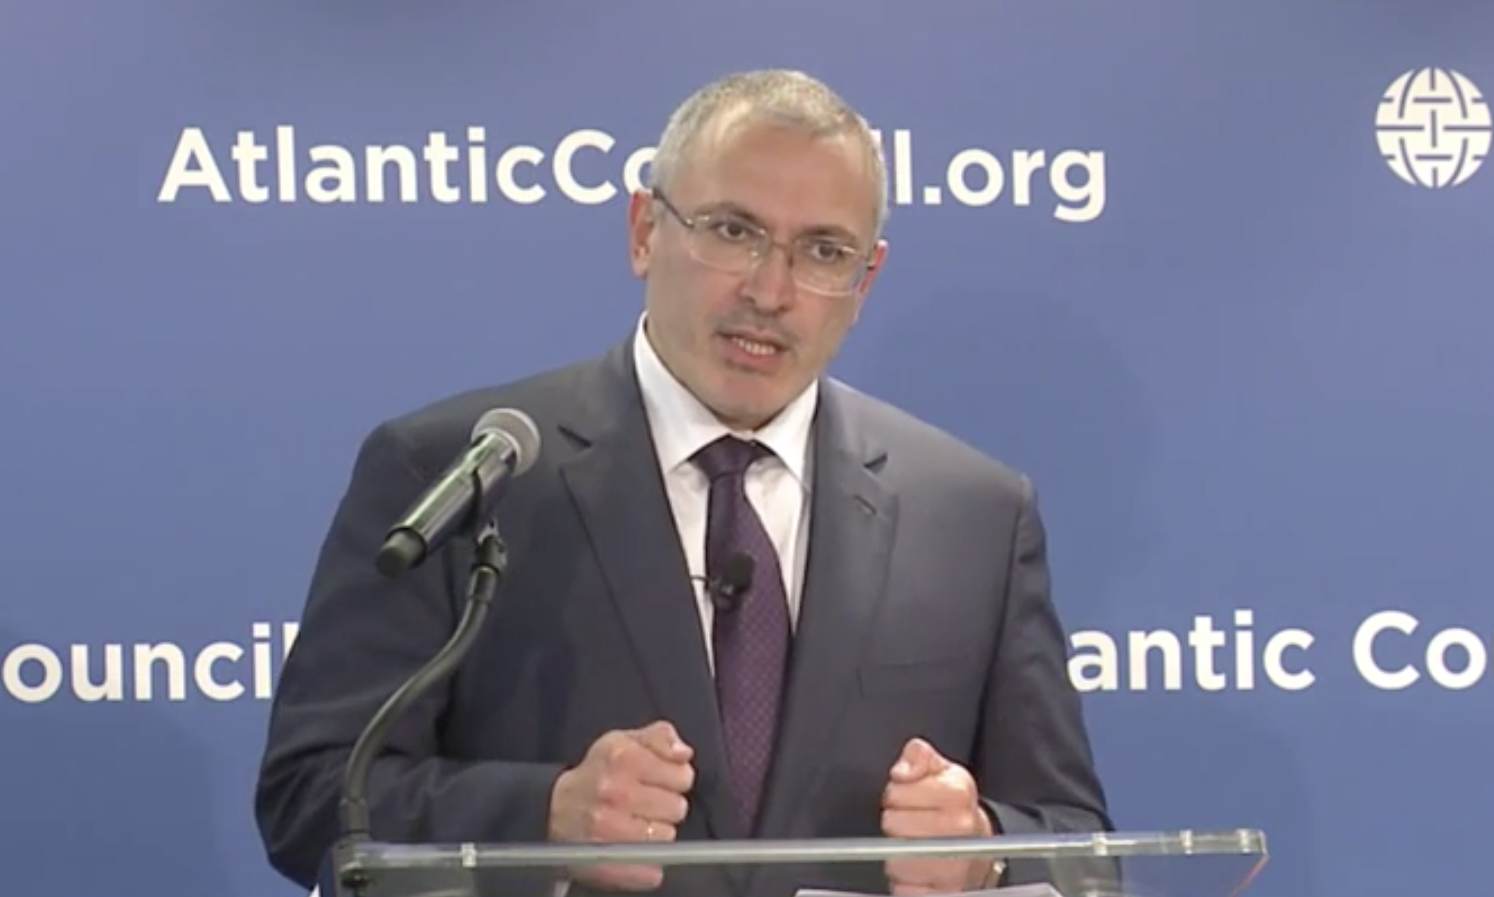 Mikhail Khodorkovsky at The Atlantic Council on June 17, 2015.